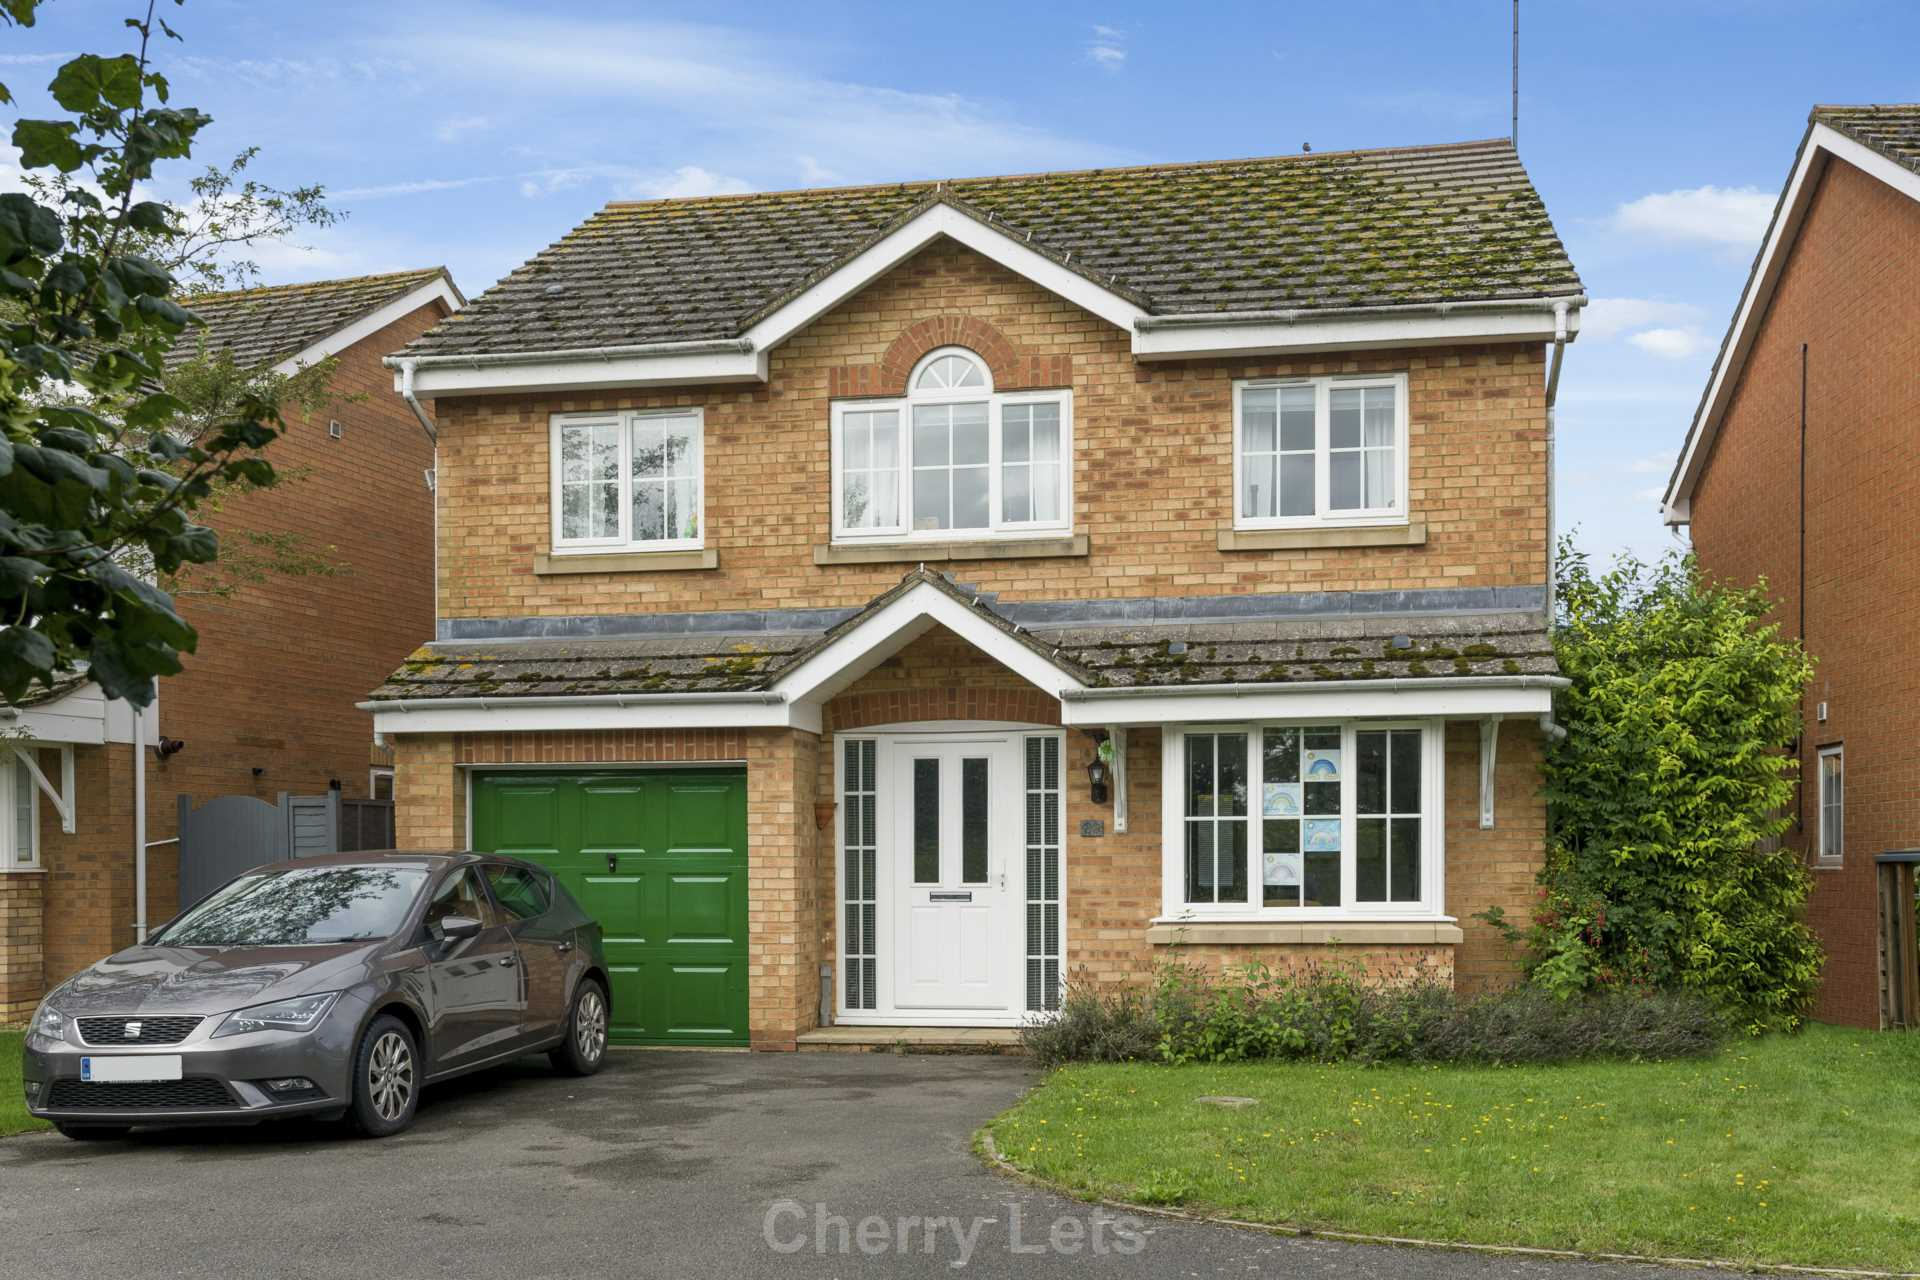 4 bed detached house to rent in Humphries Drive, Brackley, NN13  - Property Image 2